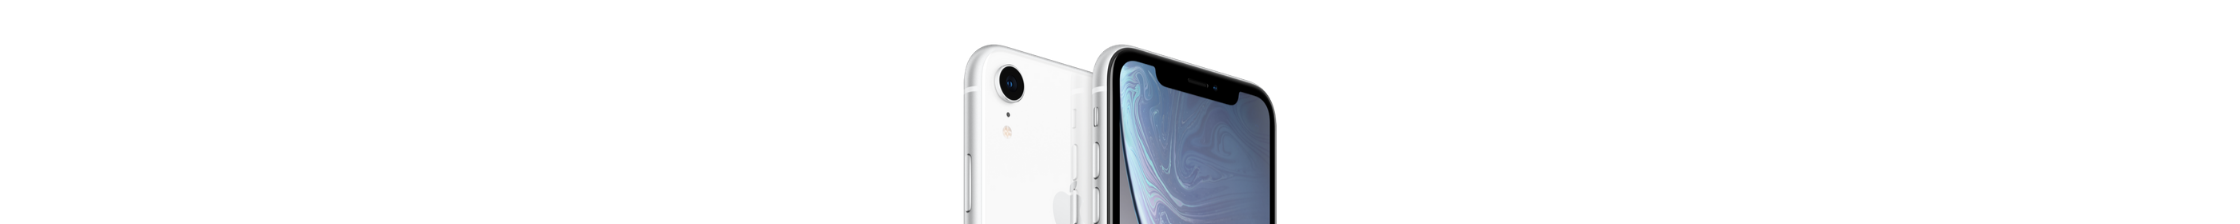 comment-choisir-gamme-iphone-x